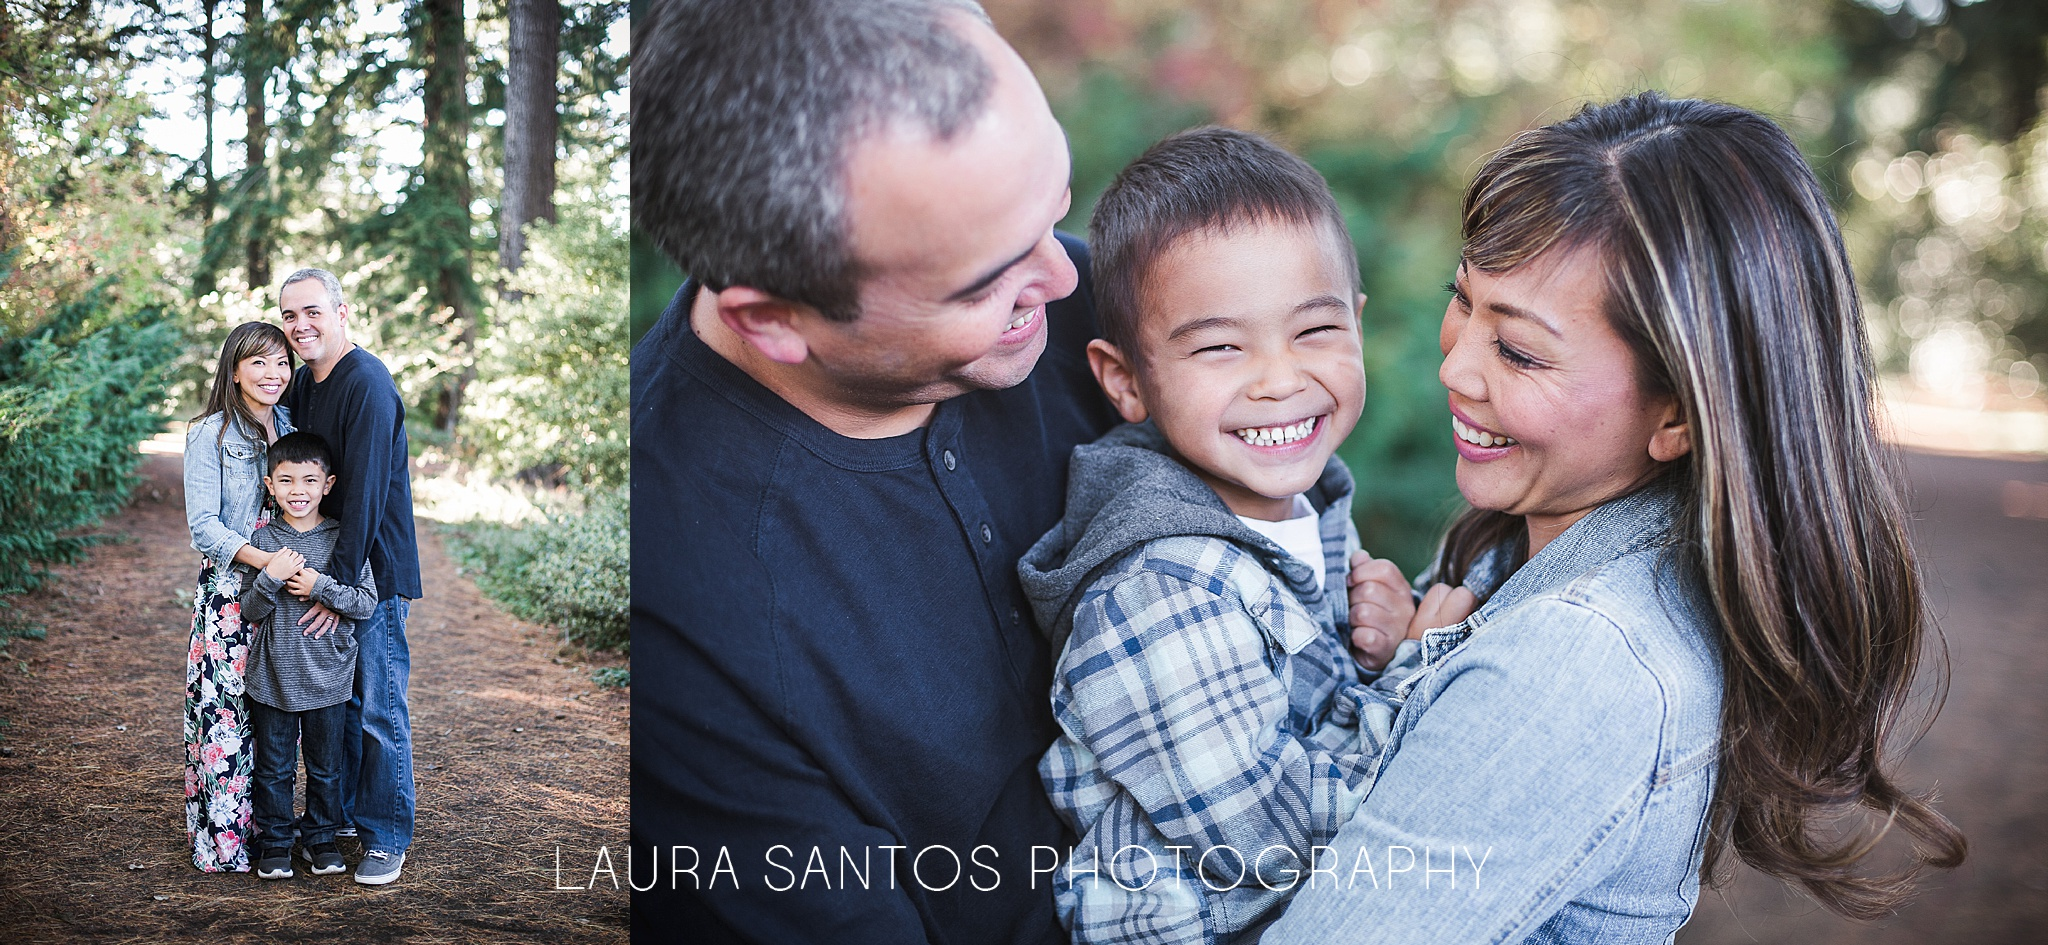 Laura Santos Photography Portland Oregon Family Photographer_0746.jpg